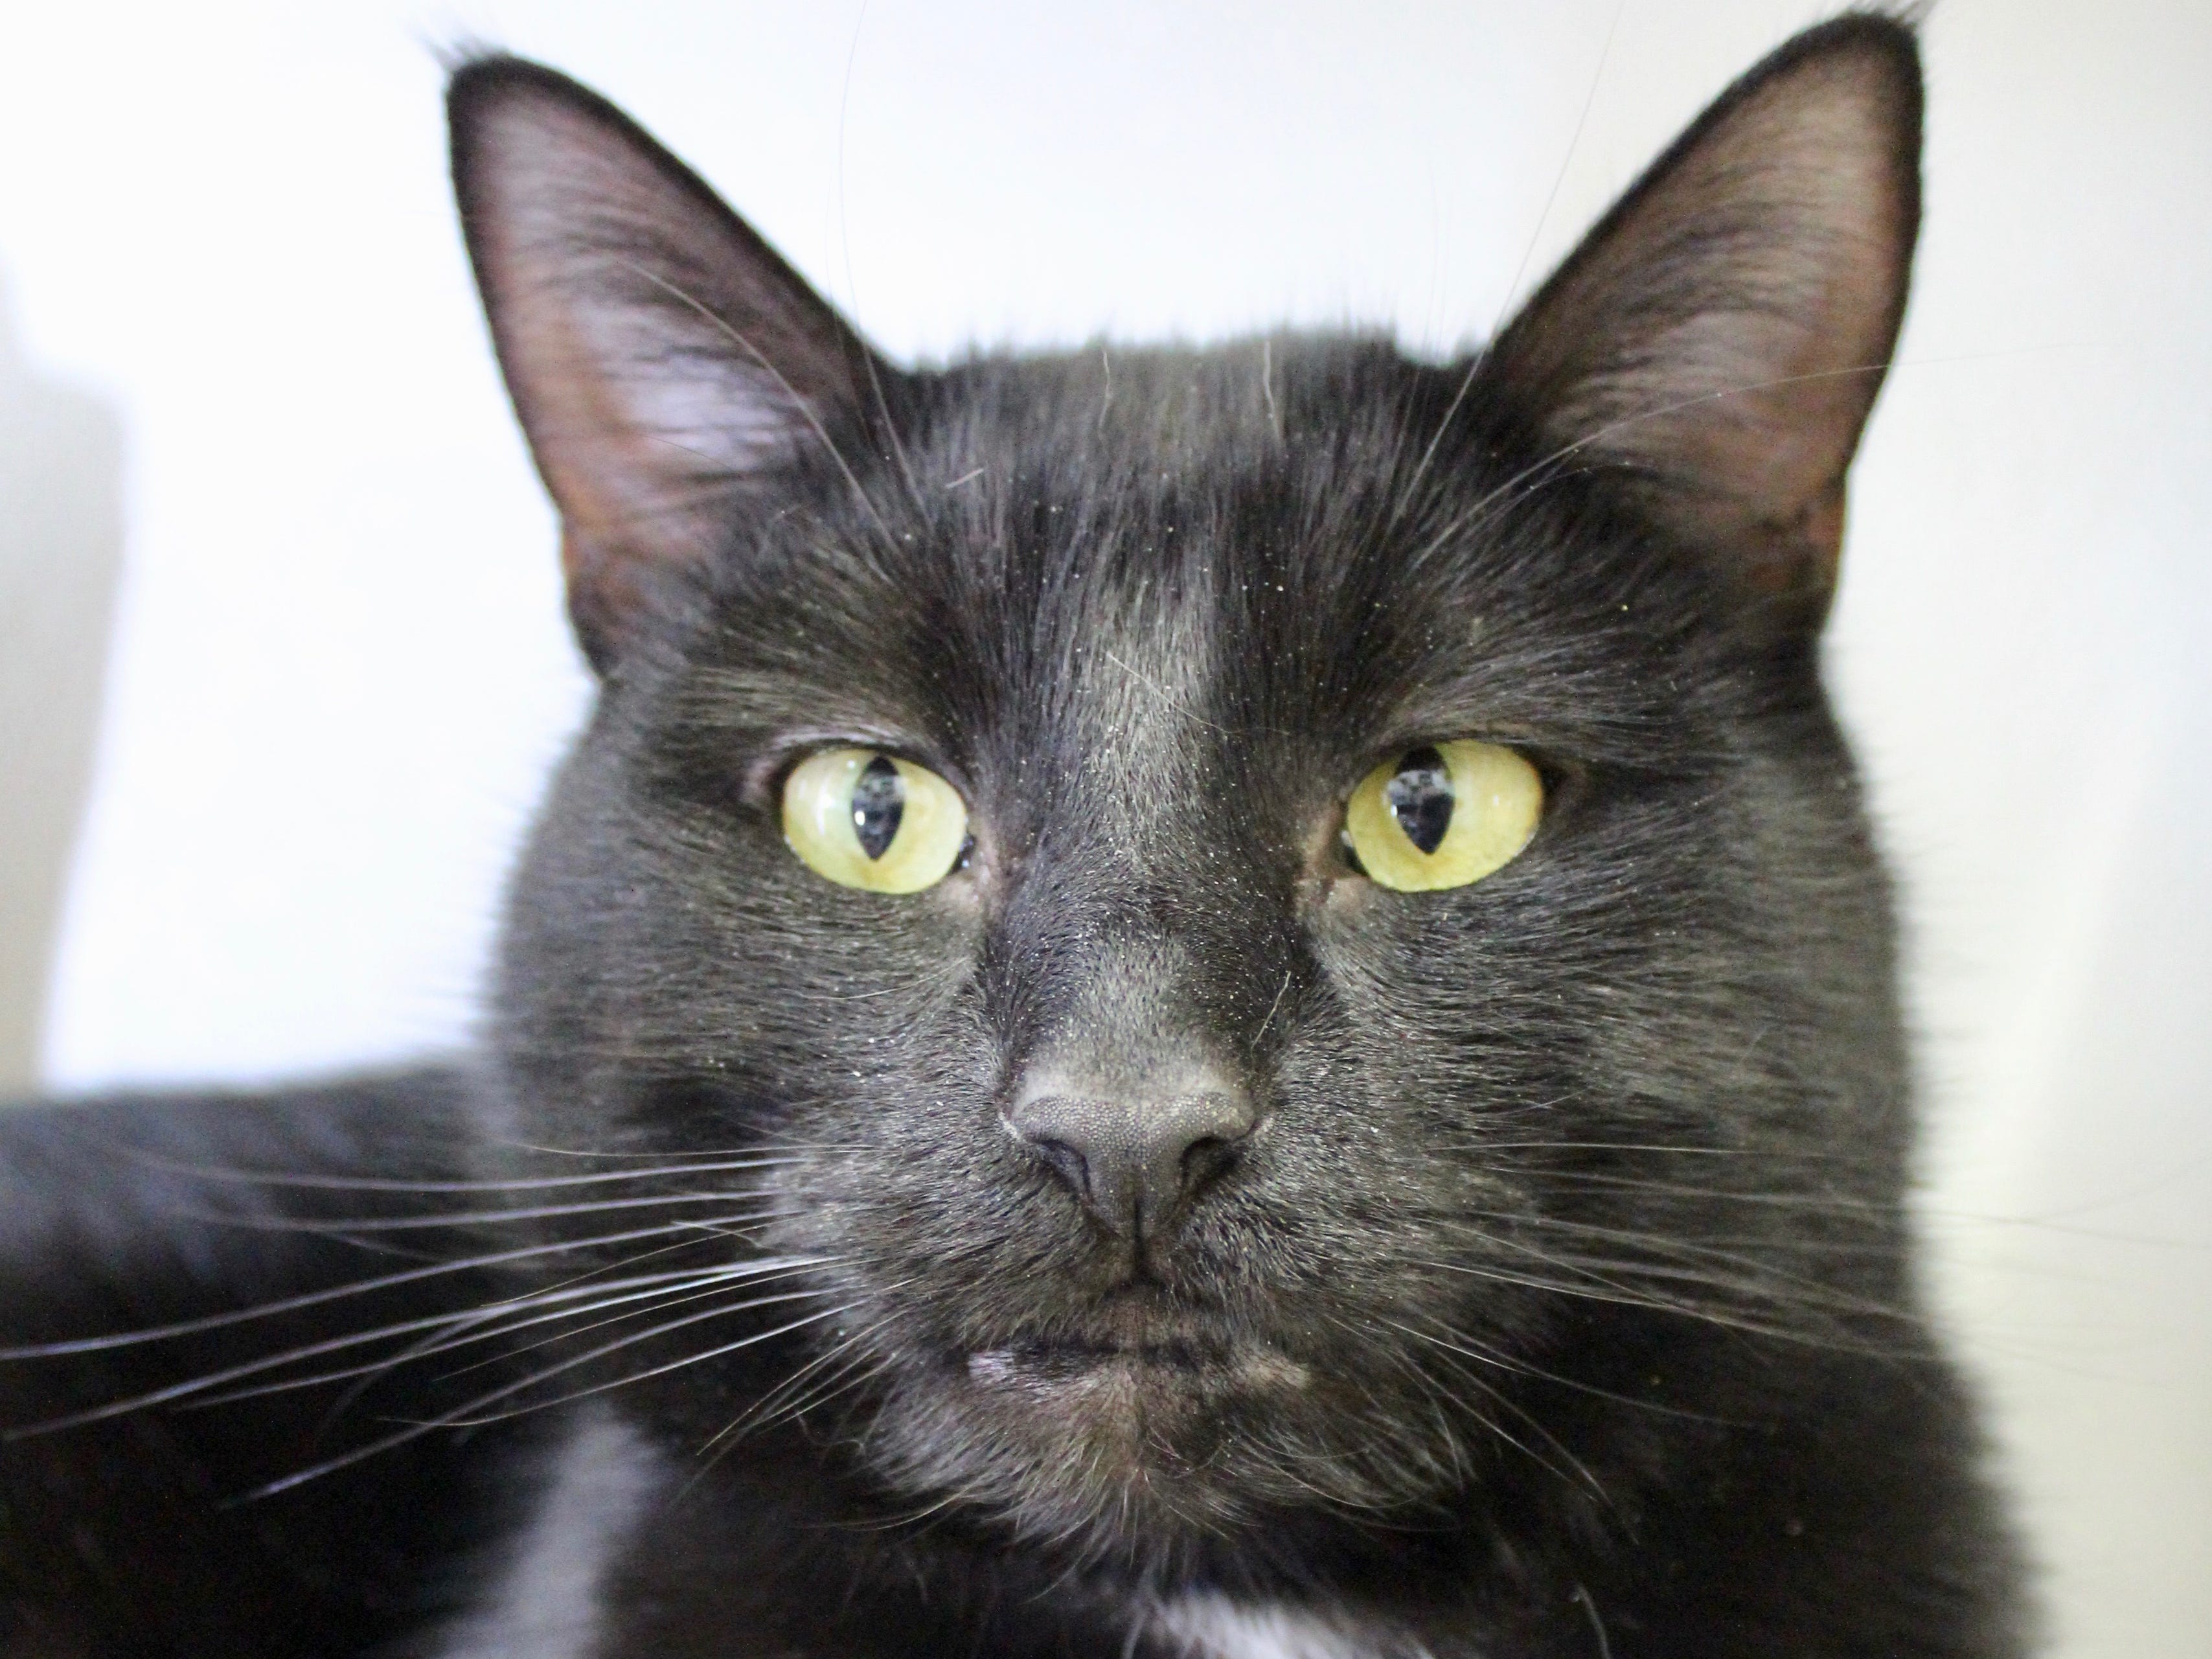 Sylvester is a 2-year-old short-haired black cat. He is a big cat at 12 pounds, and he is remarkably athletic. He enjoys chasing wand toys and gets along nicely with other cats, but his history with dogs is unclear. To find our more, call Willamette Humane Society at 503-585-5900 or visit www.whs4pets.org.